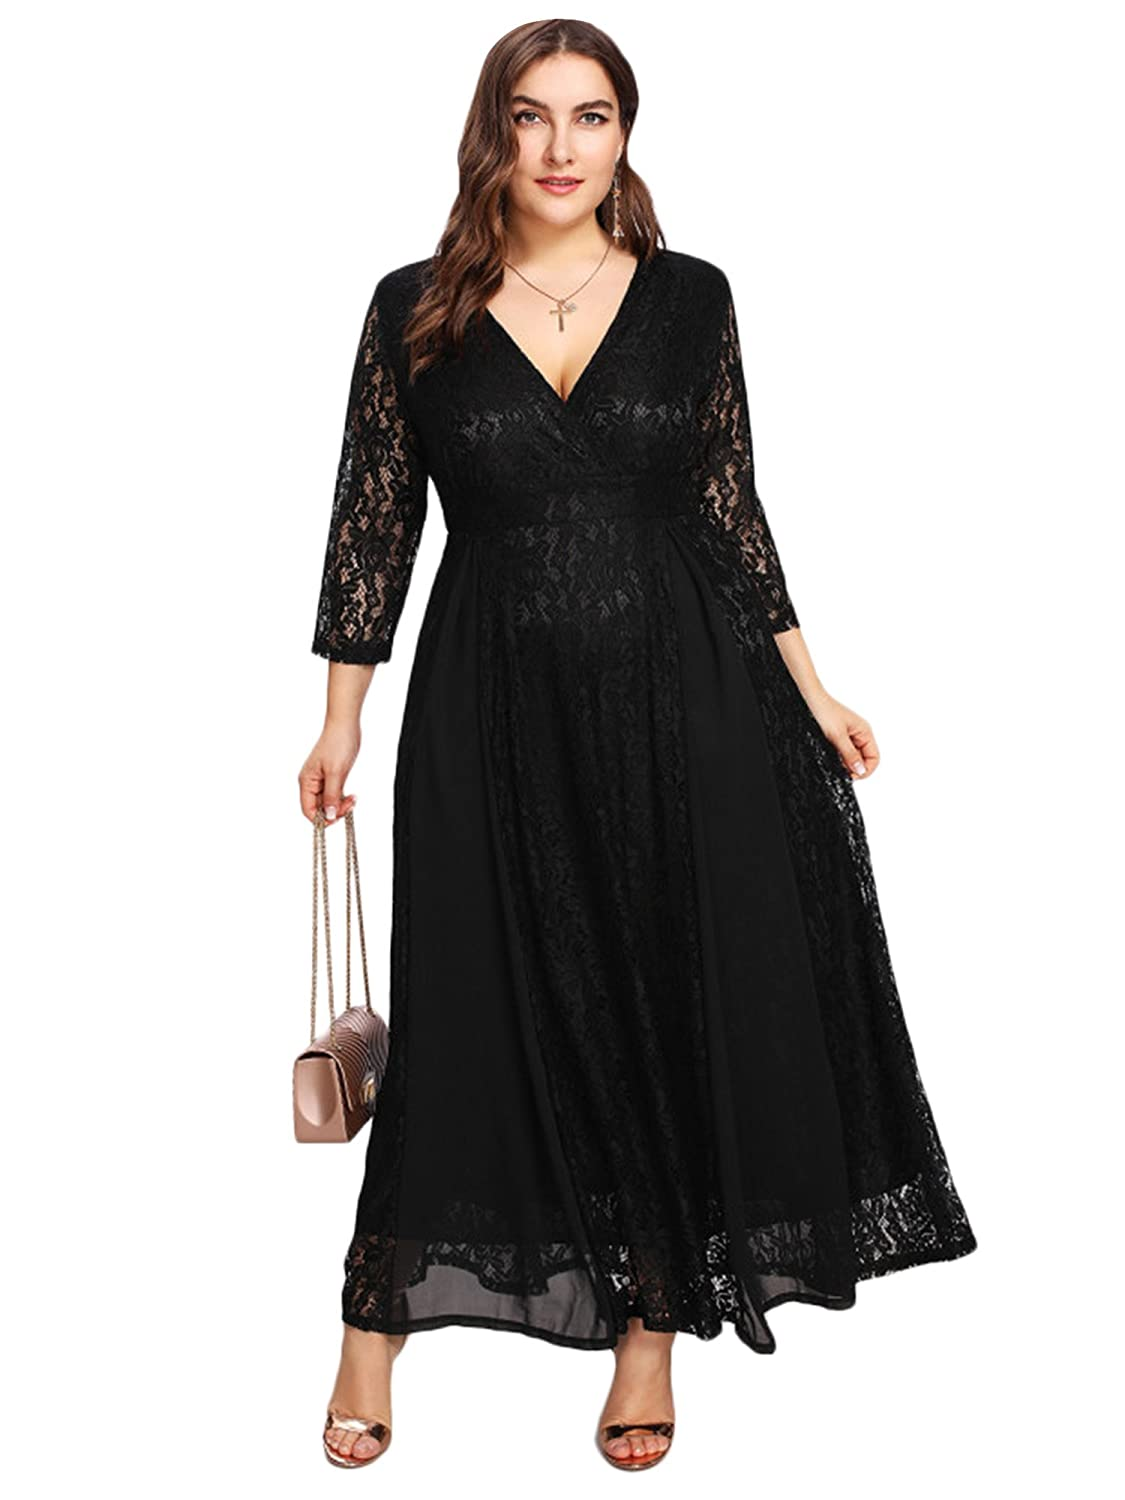 61dc0e4b86c0 Amazon.com: ESPRLIA Women's Plus Size High Waist Lace Overlay Maxi Evening  Dresses: Clothing